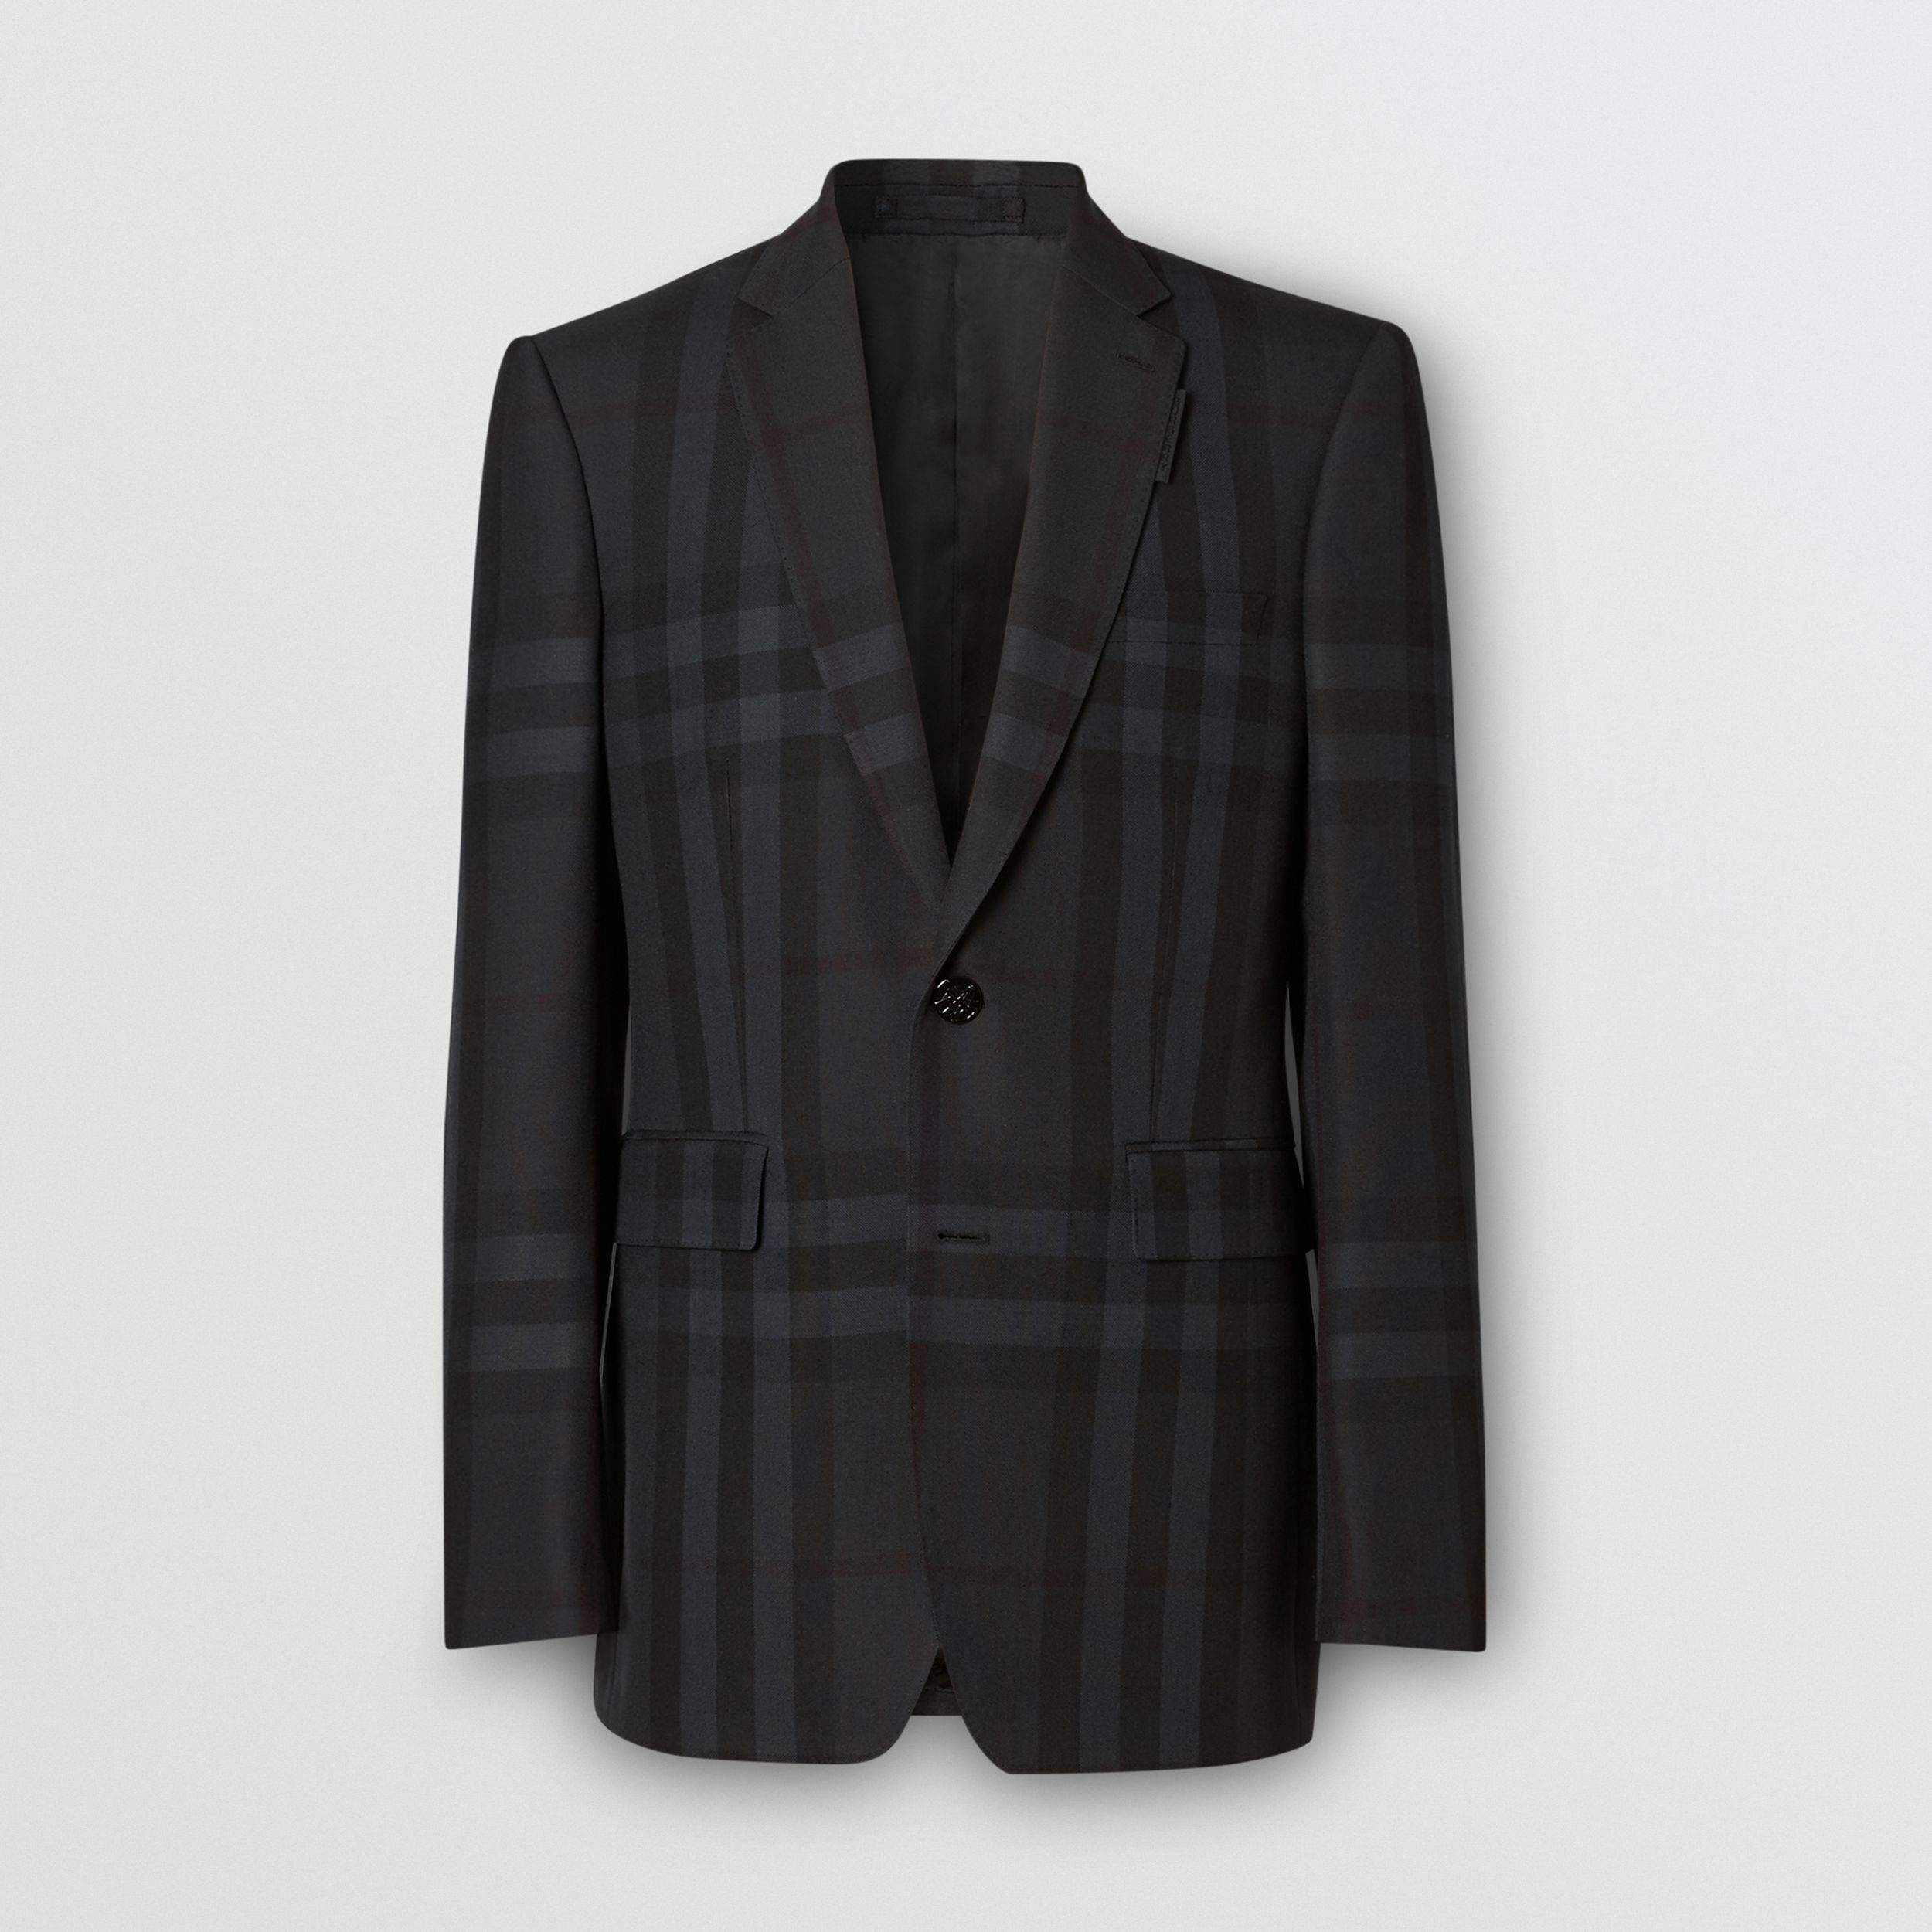 Classic Fit Check Wool Tailored Jacket in Charcoal - Men | Burberry Canada - 4